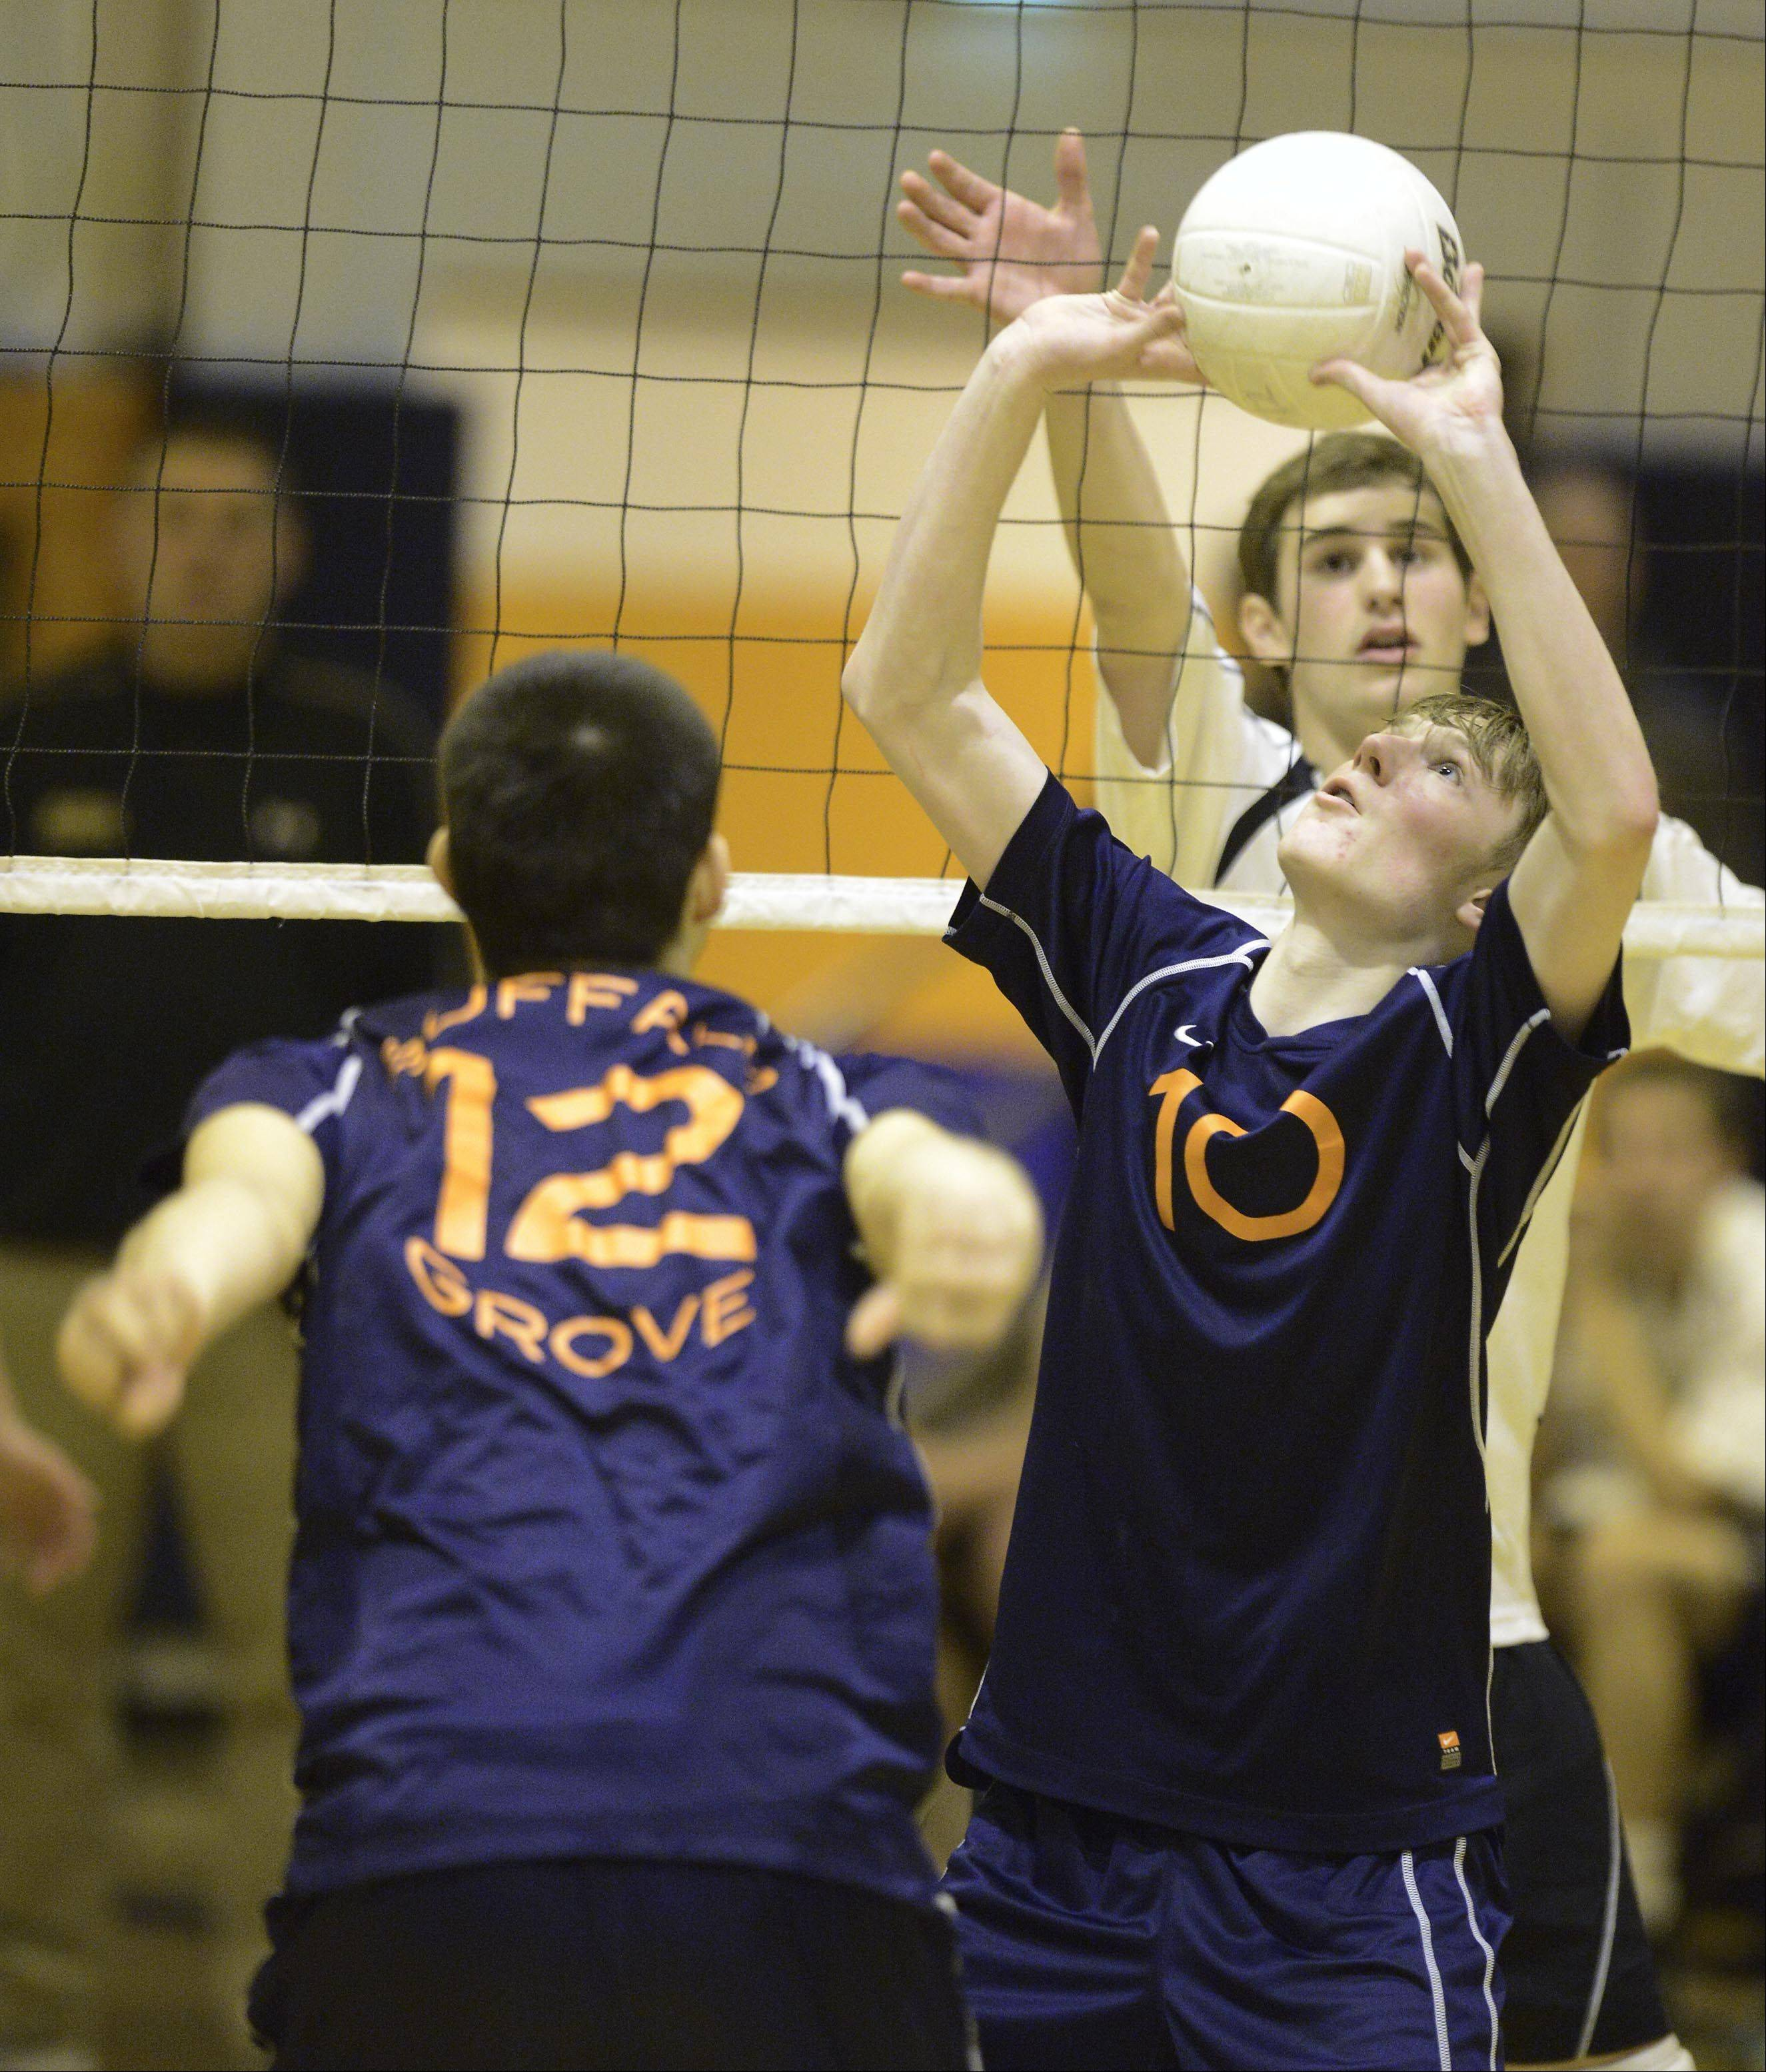 Buffalo Grove's Kevin Shanahan, right, sets the ball as teammate Jose Aguirre gets ready for a kill during the Buffalo Grove boys volleyball invite Saturday.